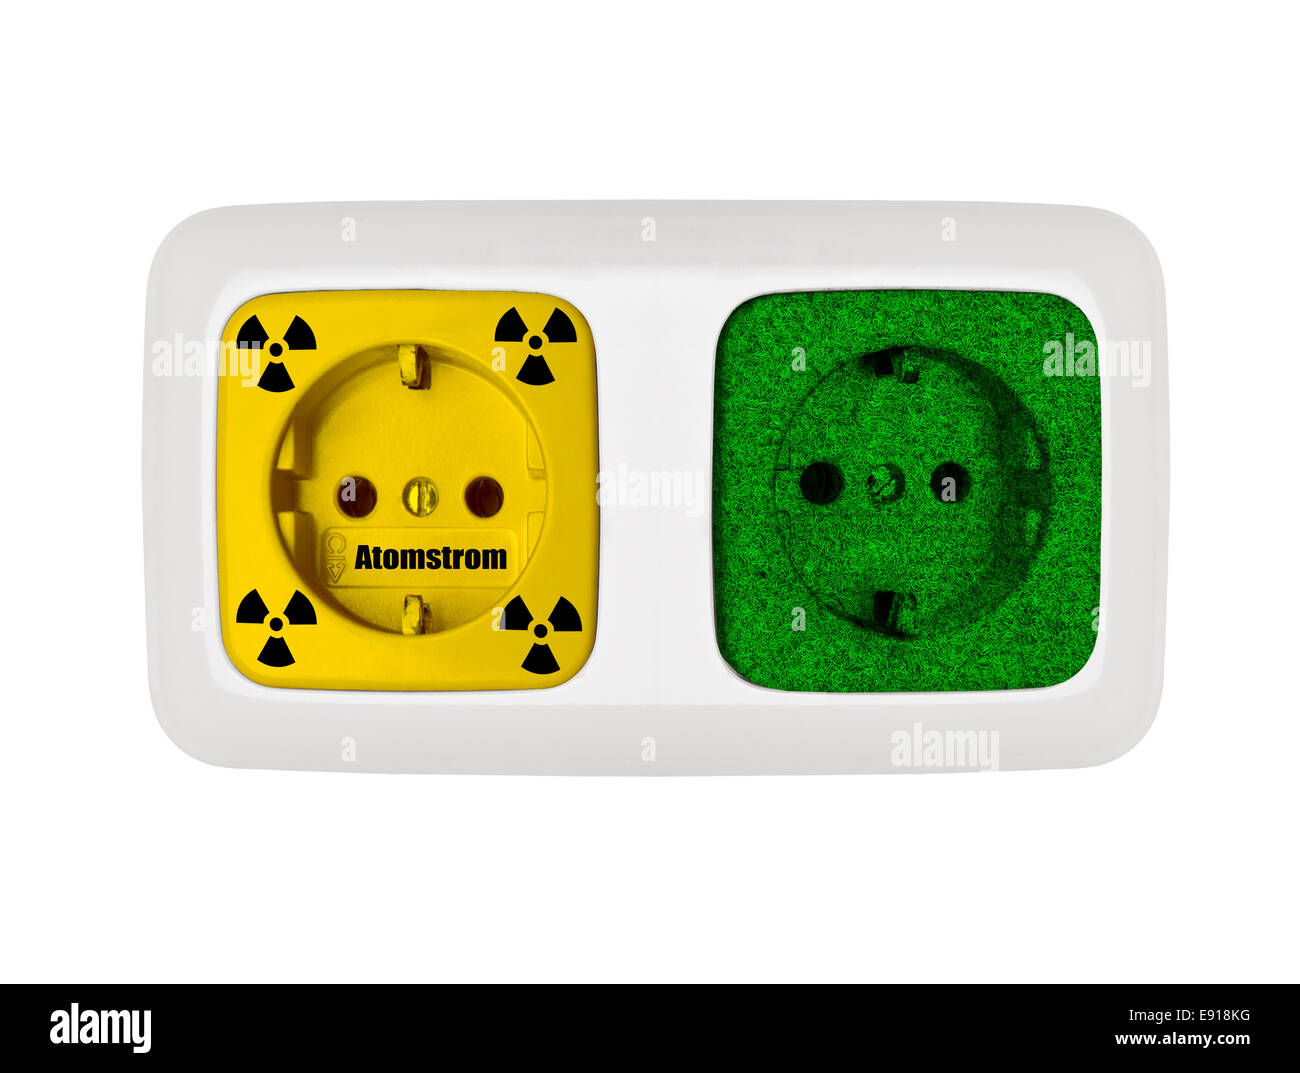 eco-power against nuclear power - Stock Image